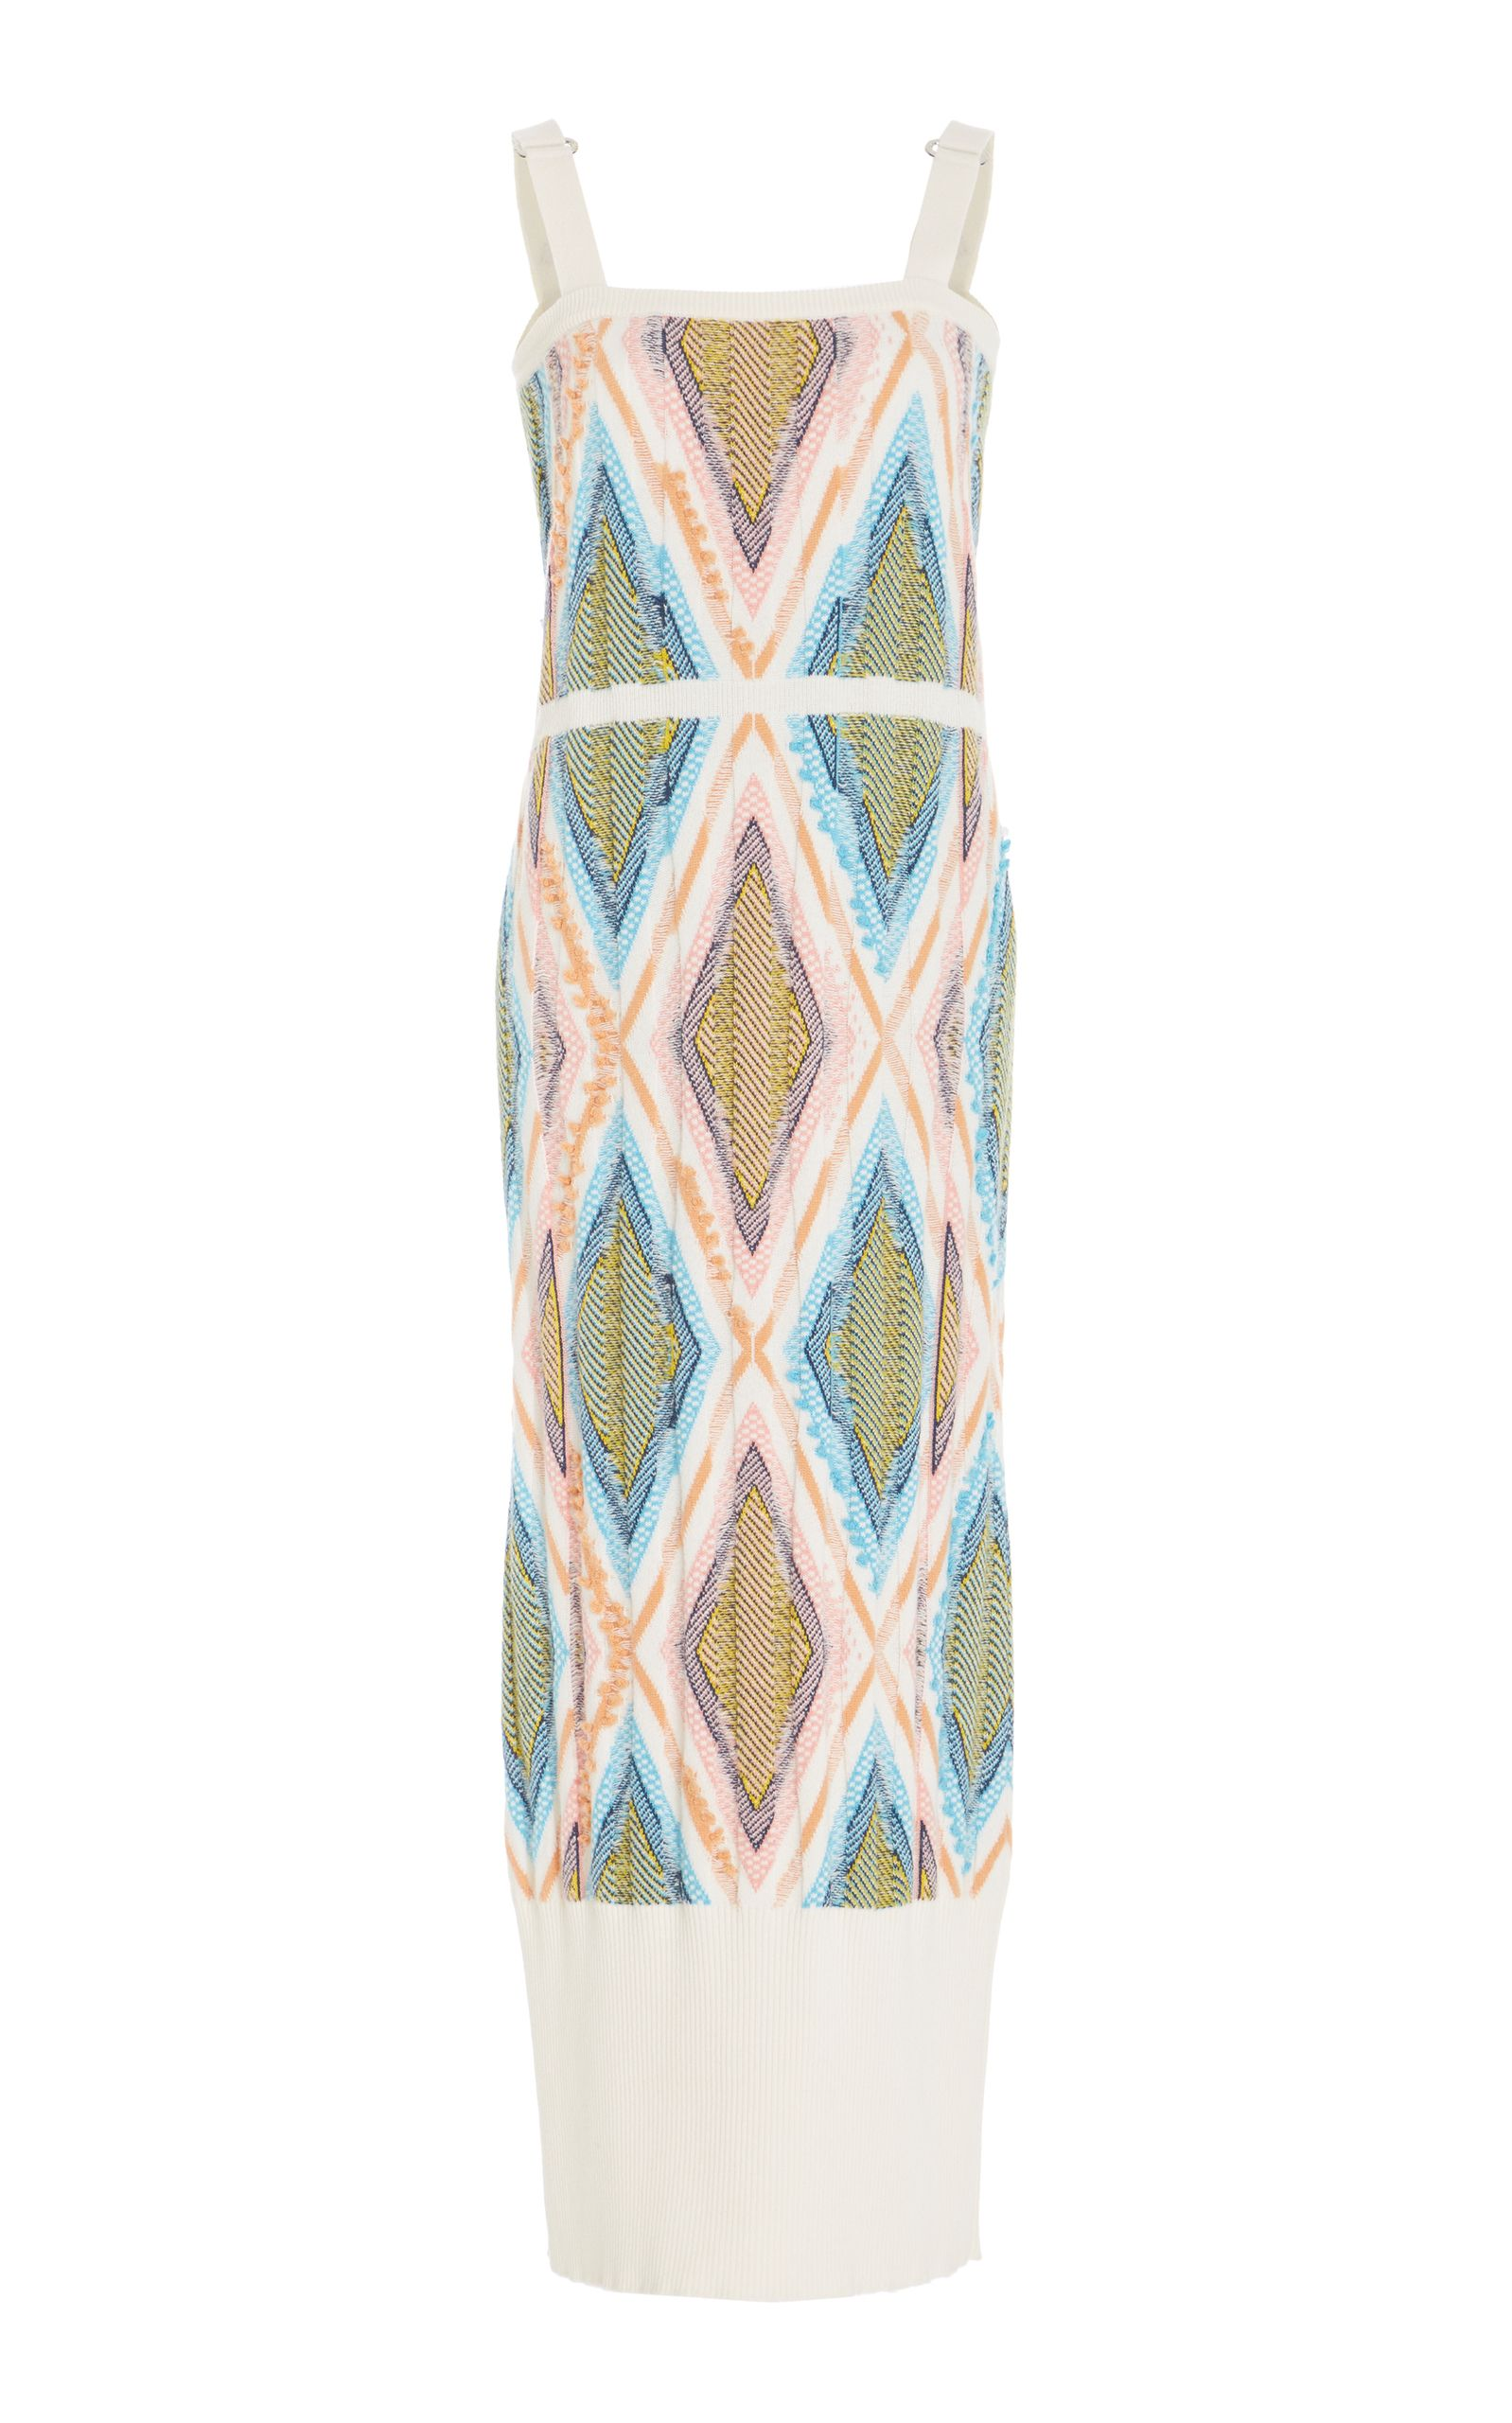 New Arrival Patterned Cashmere Dress Barrie Ebay Online Buy Cheap The Cheapest pNExuln